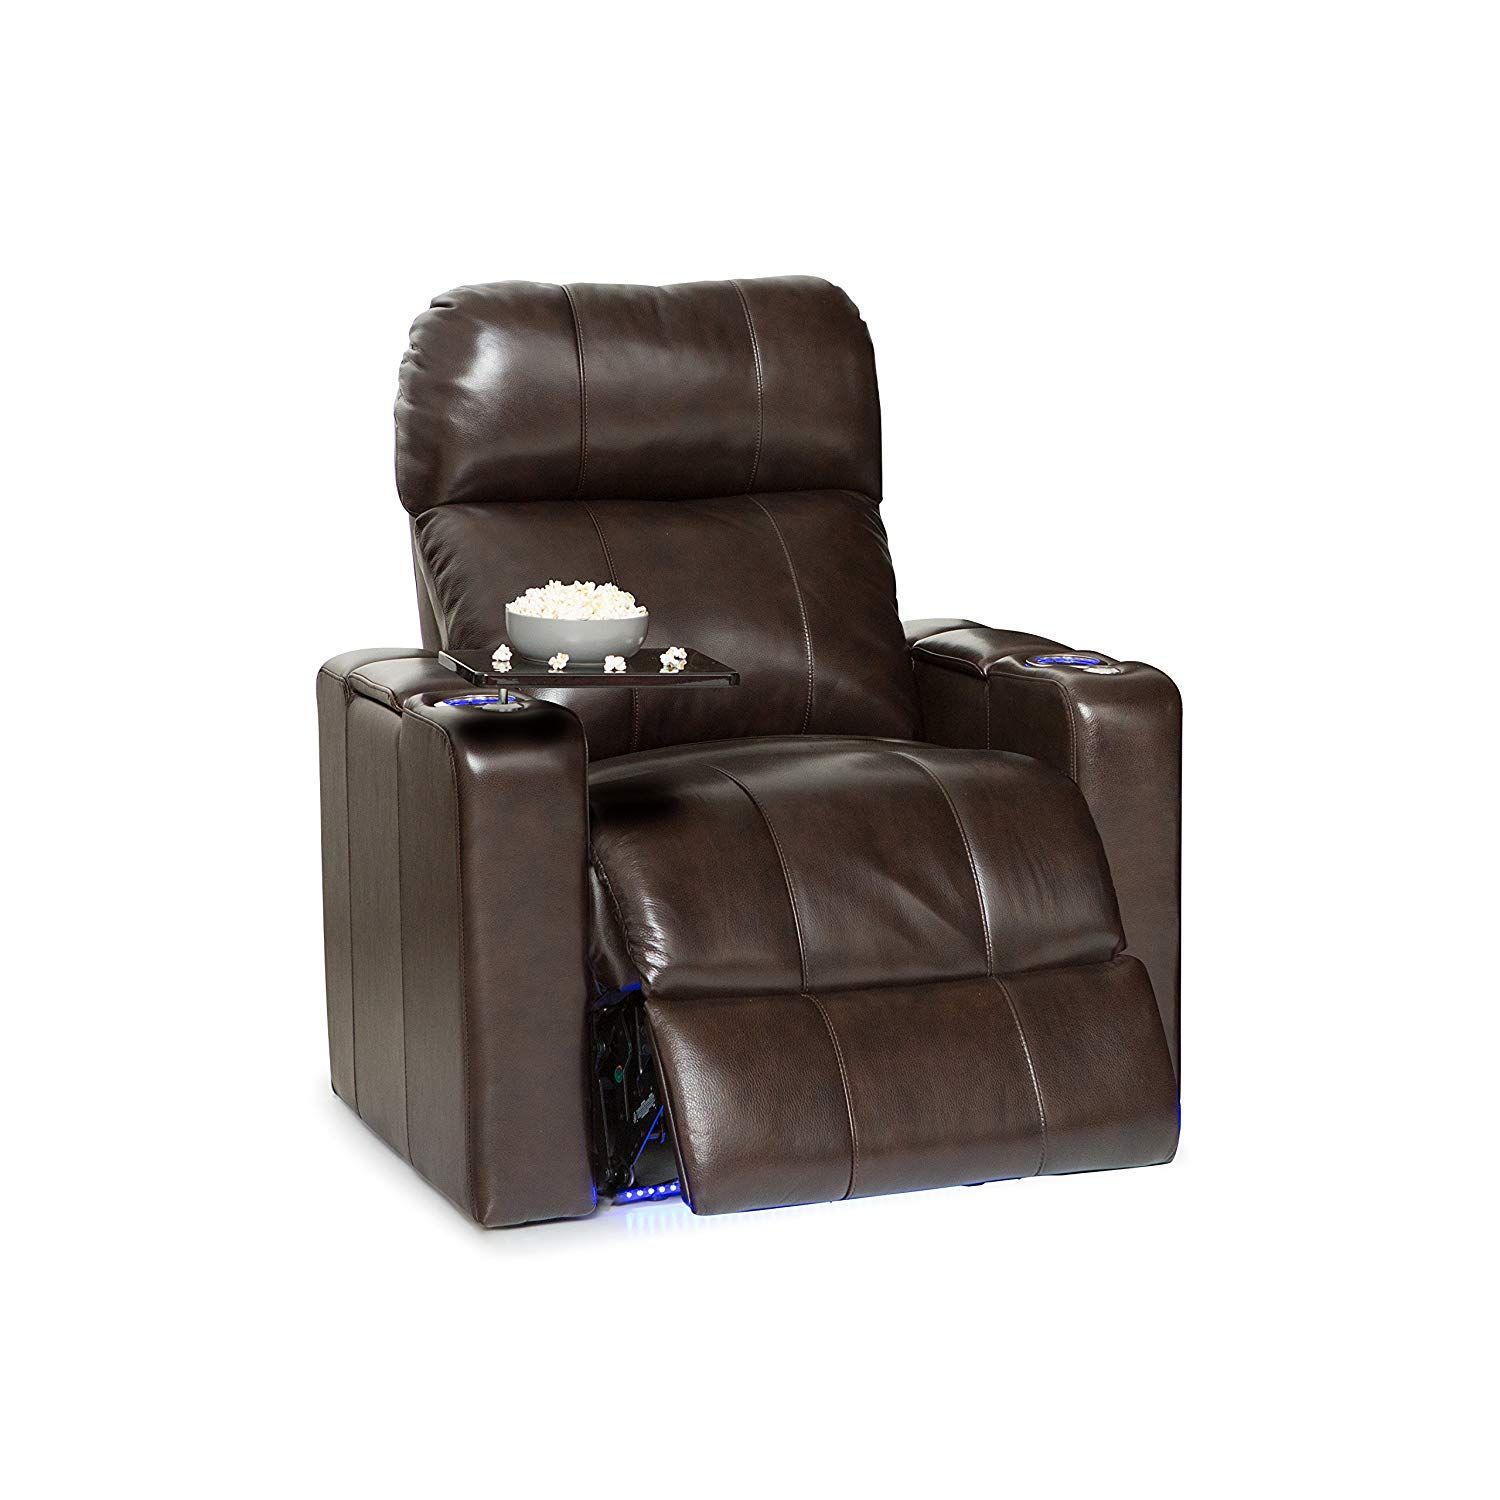 Seatcraft Monterey Leather Power Recliner With Adjustable Powered Headrest In Arm Storage And Usb Charging Brown Hom Home Theater Seating Headrest Recliner Recliner with cup holder and storage